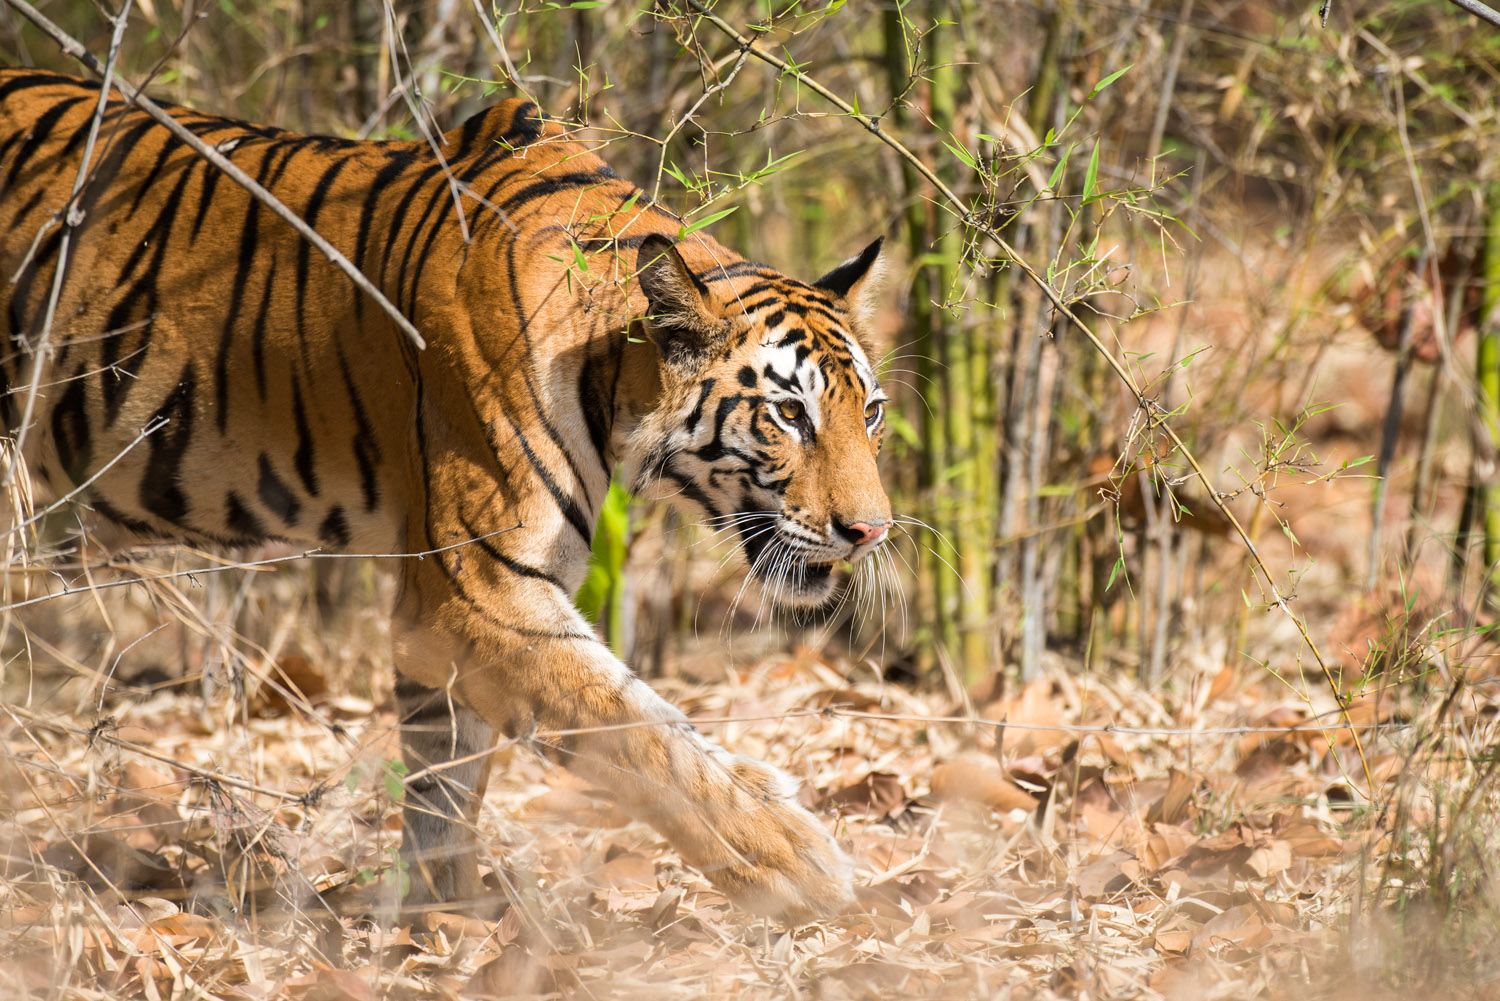 Bengal tigress walking through bamboo thicket, Bandhavgarh National Park, Madhya Pradesh, India